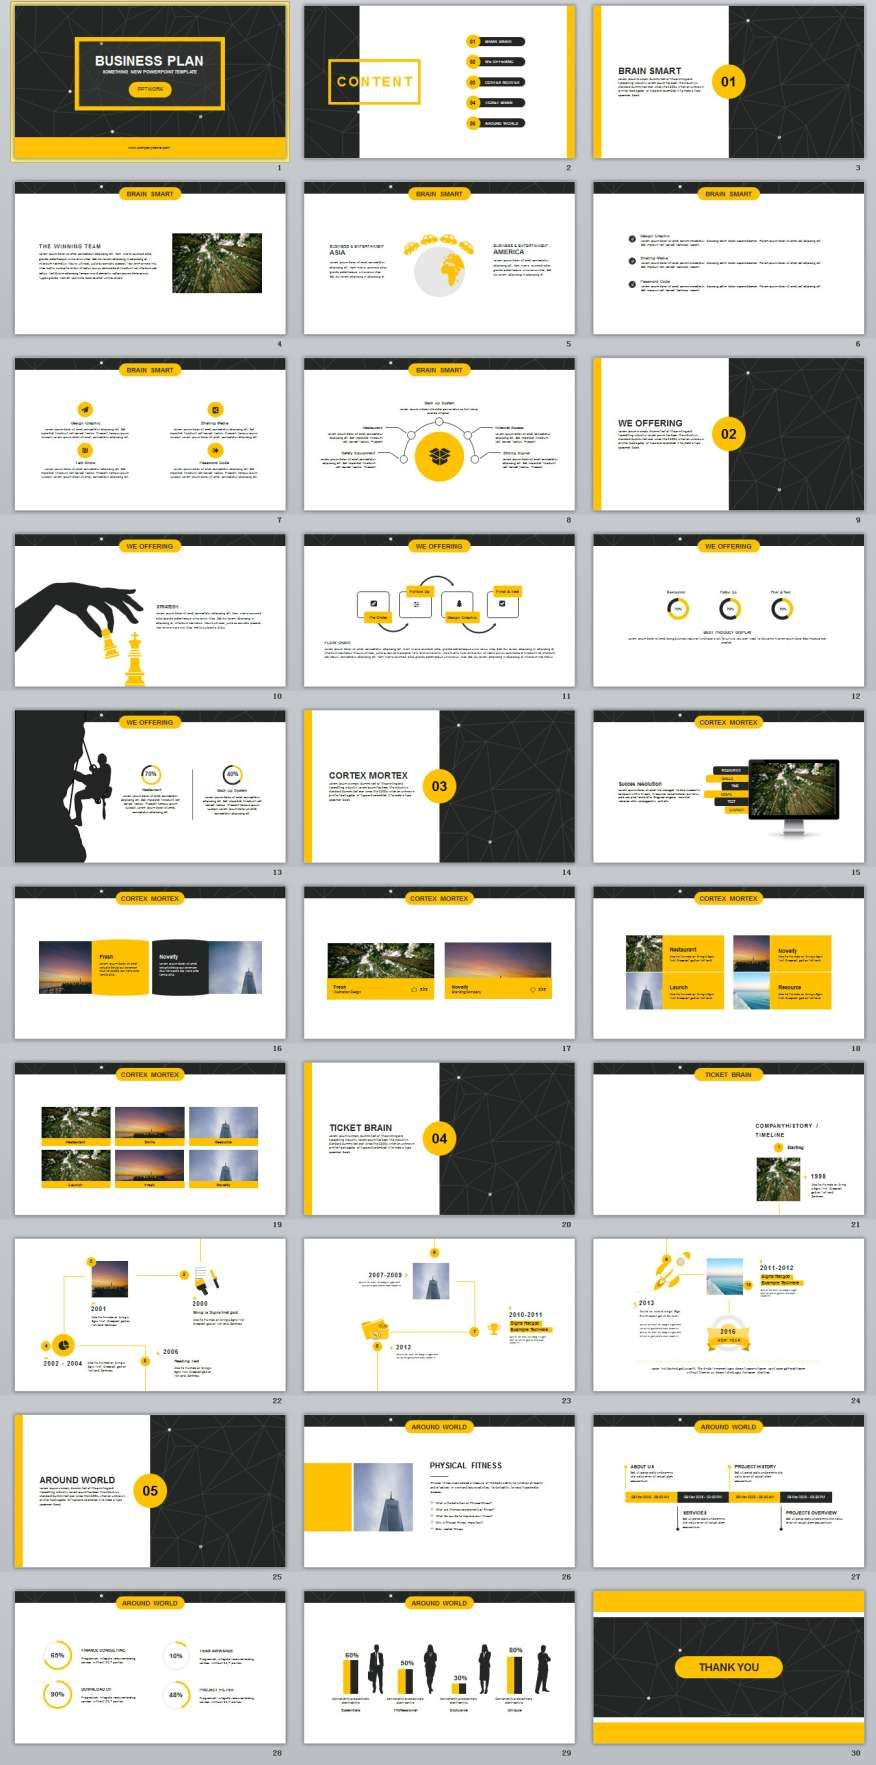 30 yellow business plan powerpoint templates planejamento 30 yellow business plan powerpoint templates toneelgroepblik Choice Image